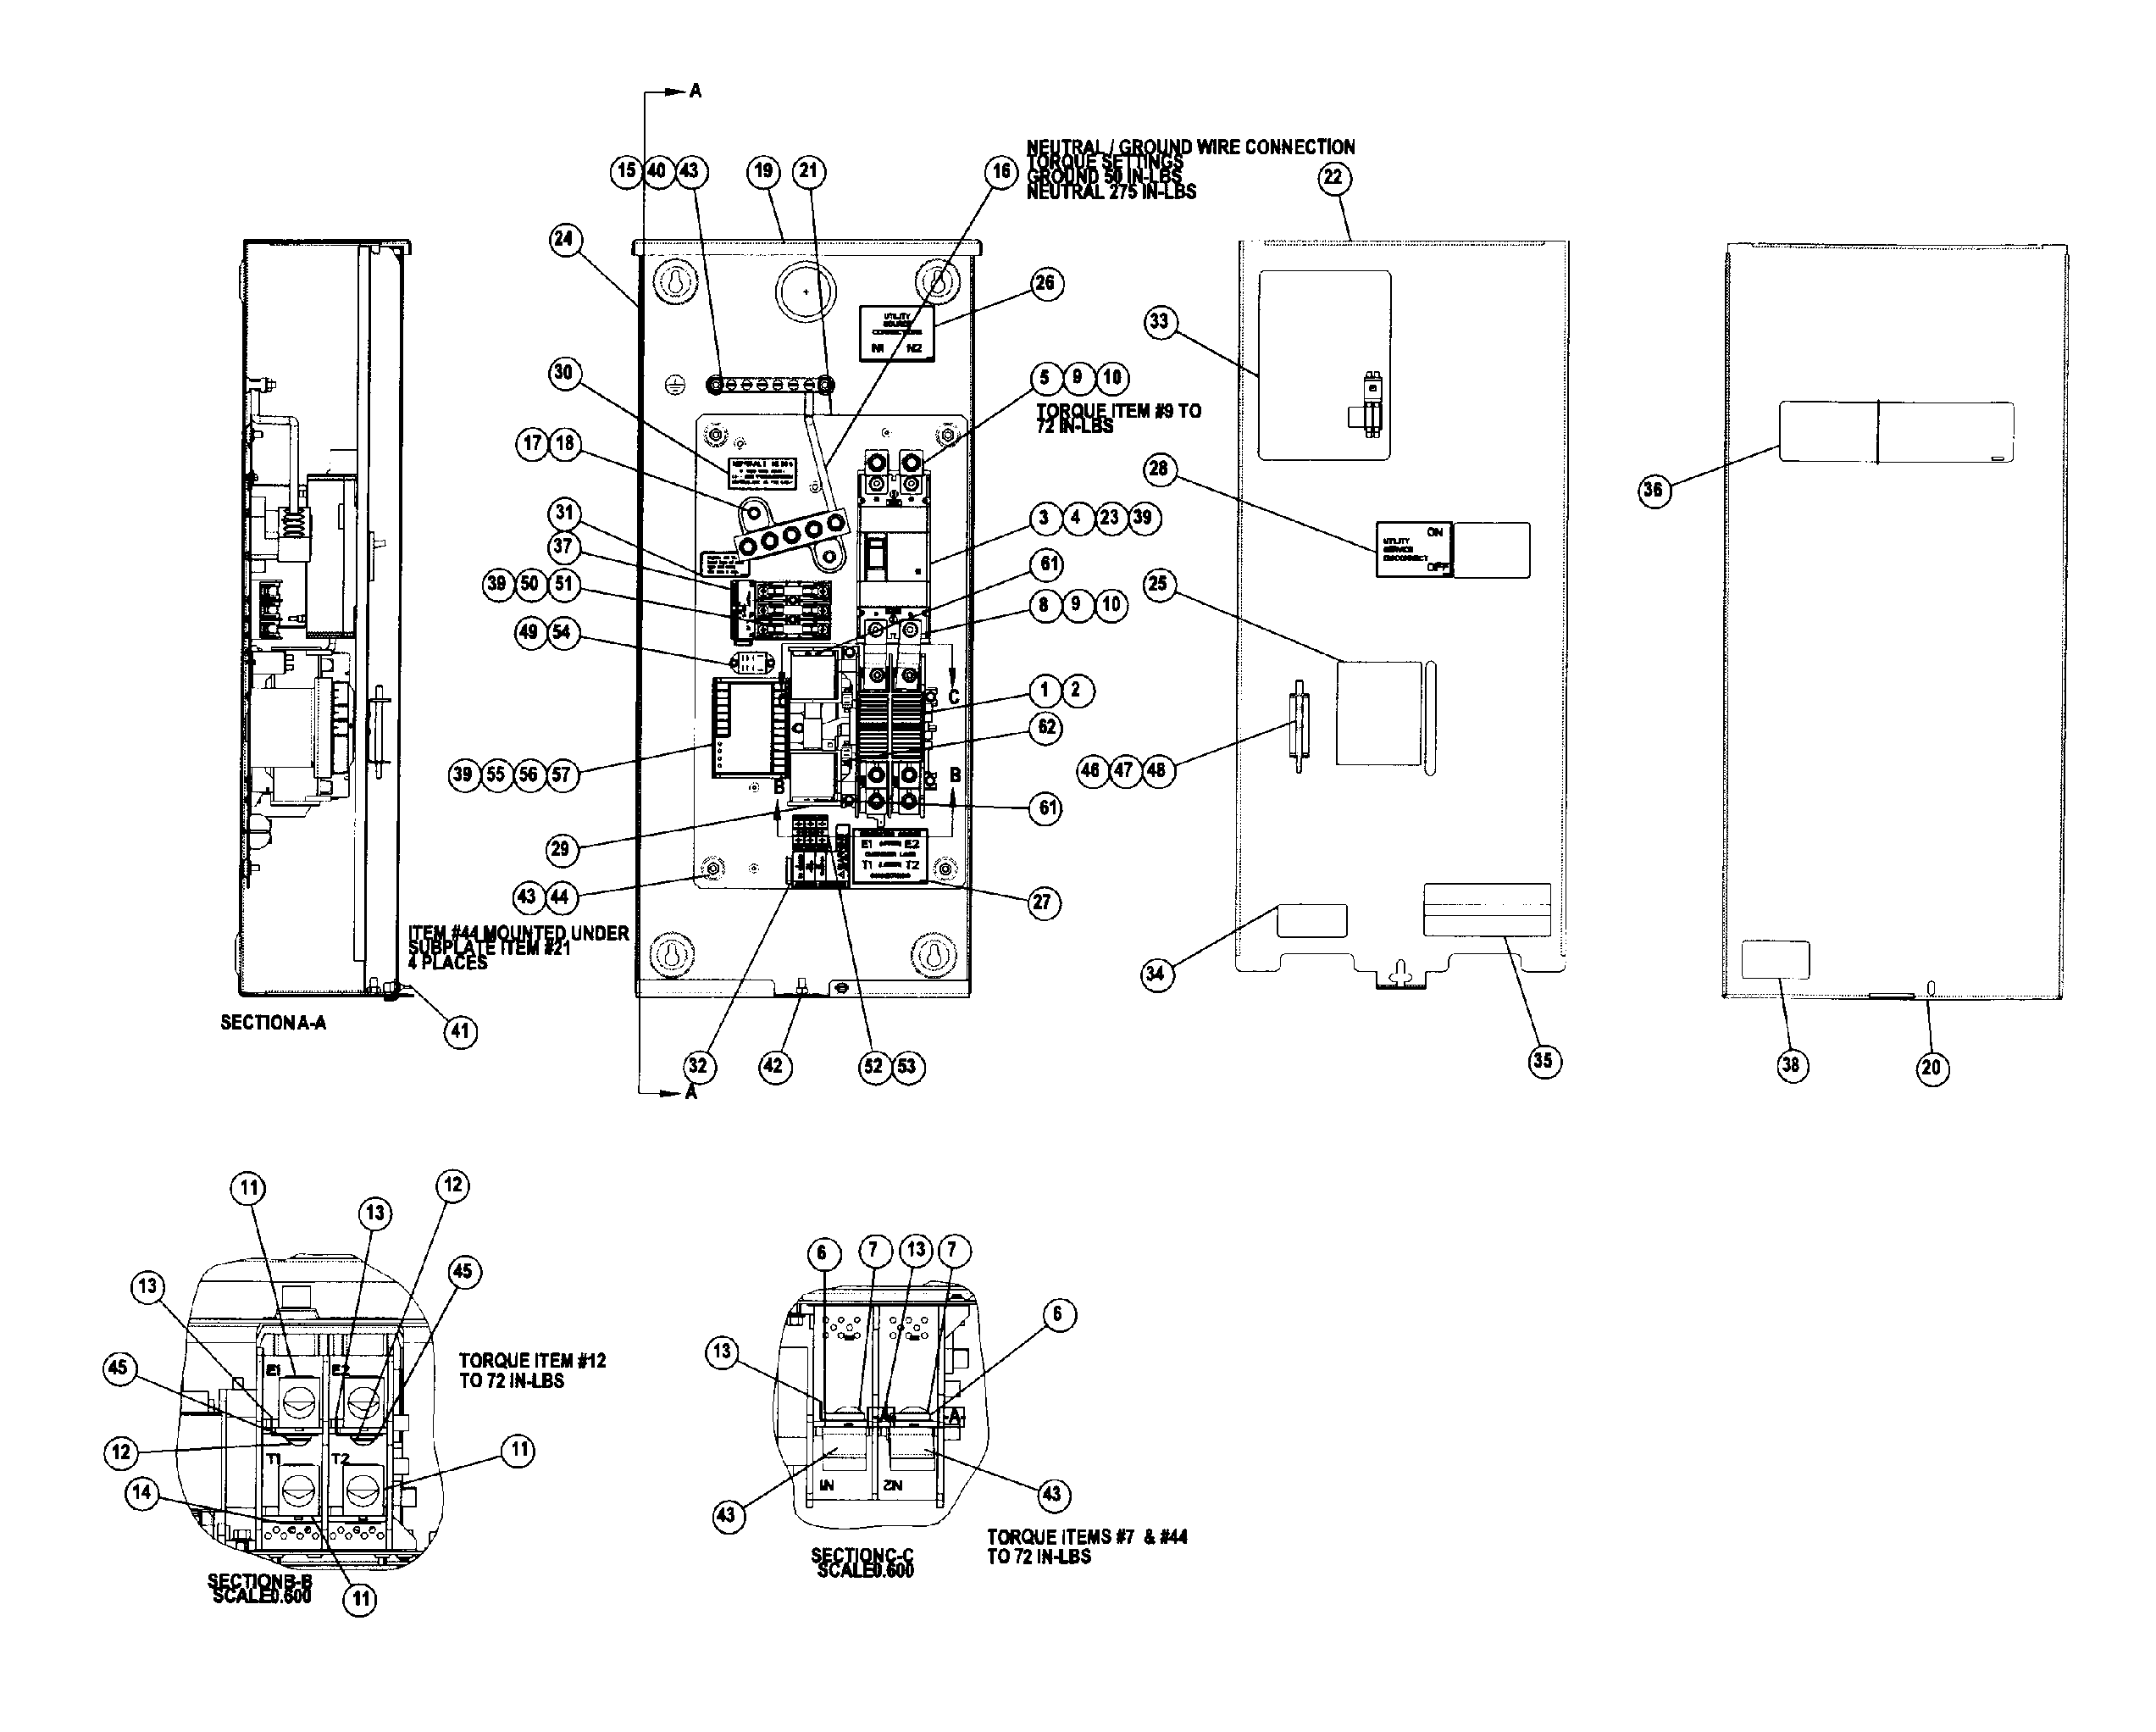 200A ELECTRIC PANEL Diagram & Parts List for Model 0062430